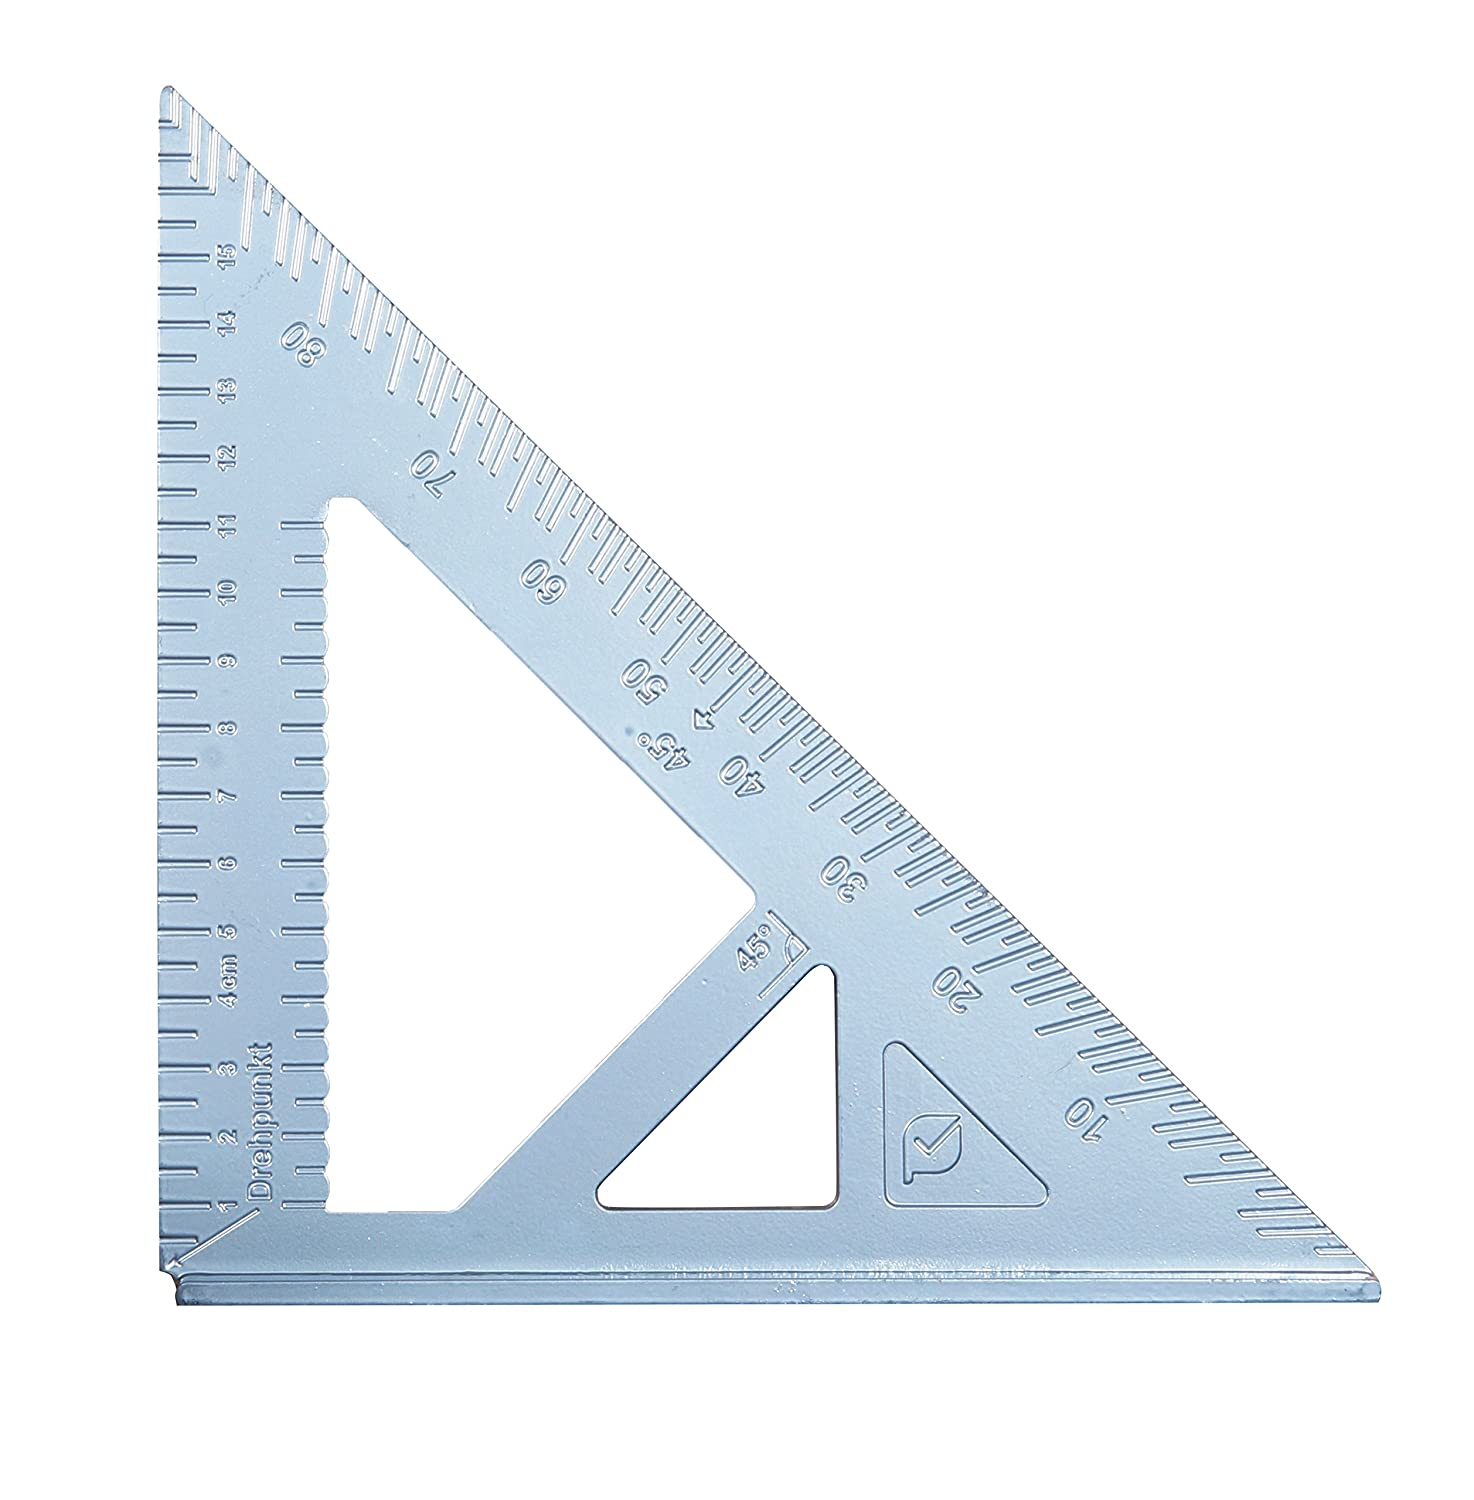 Protanic Bracket A Person Design Universal Angle Length: 17.5  cm (Wood & Metal Finish) protanic Gartentechnik GmbH